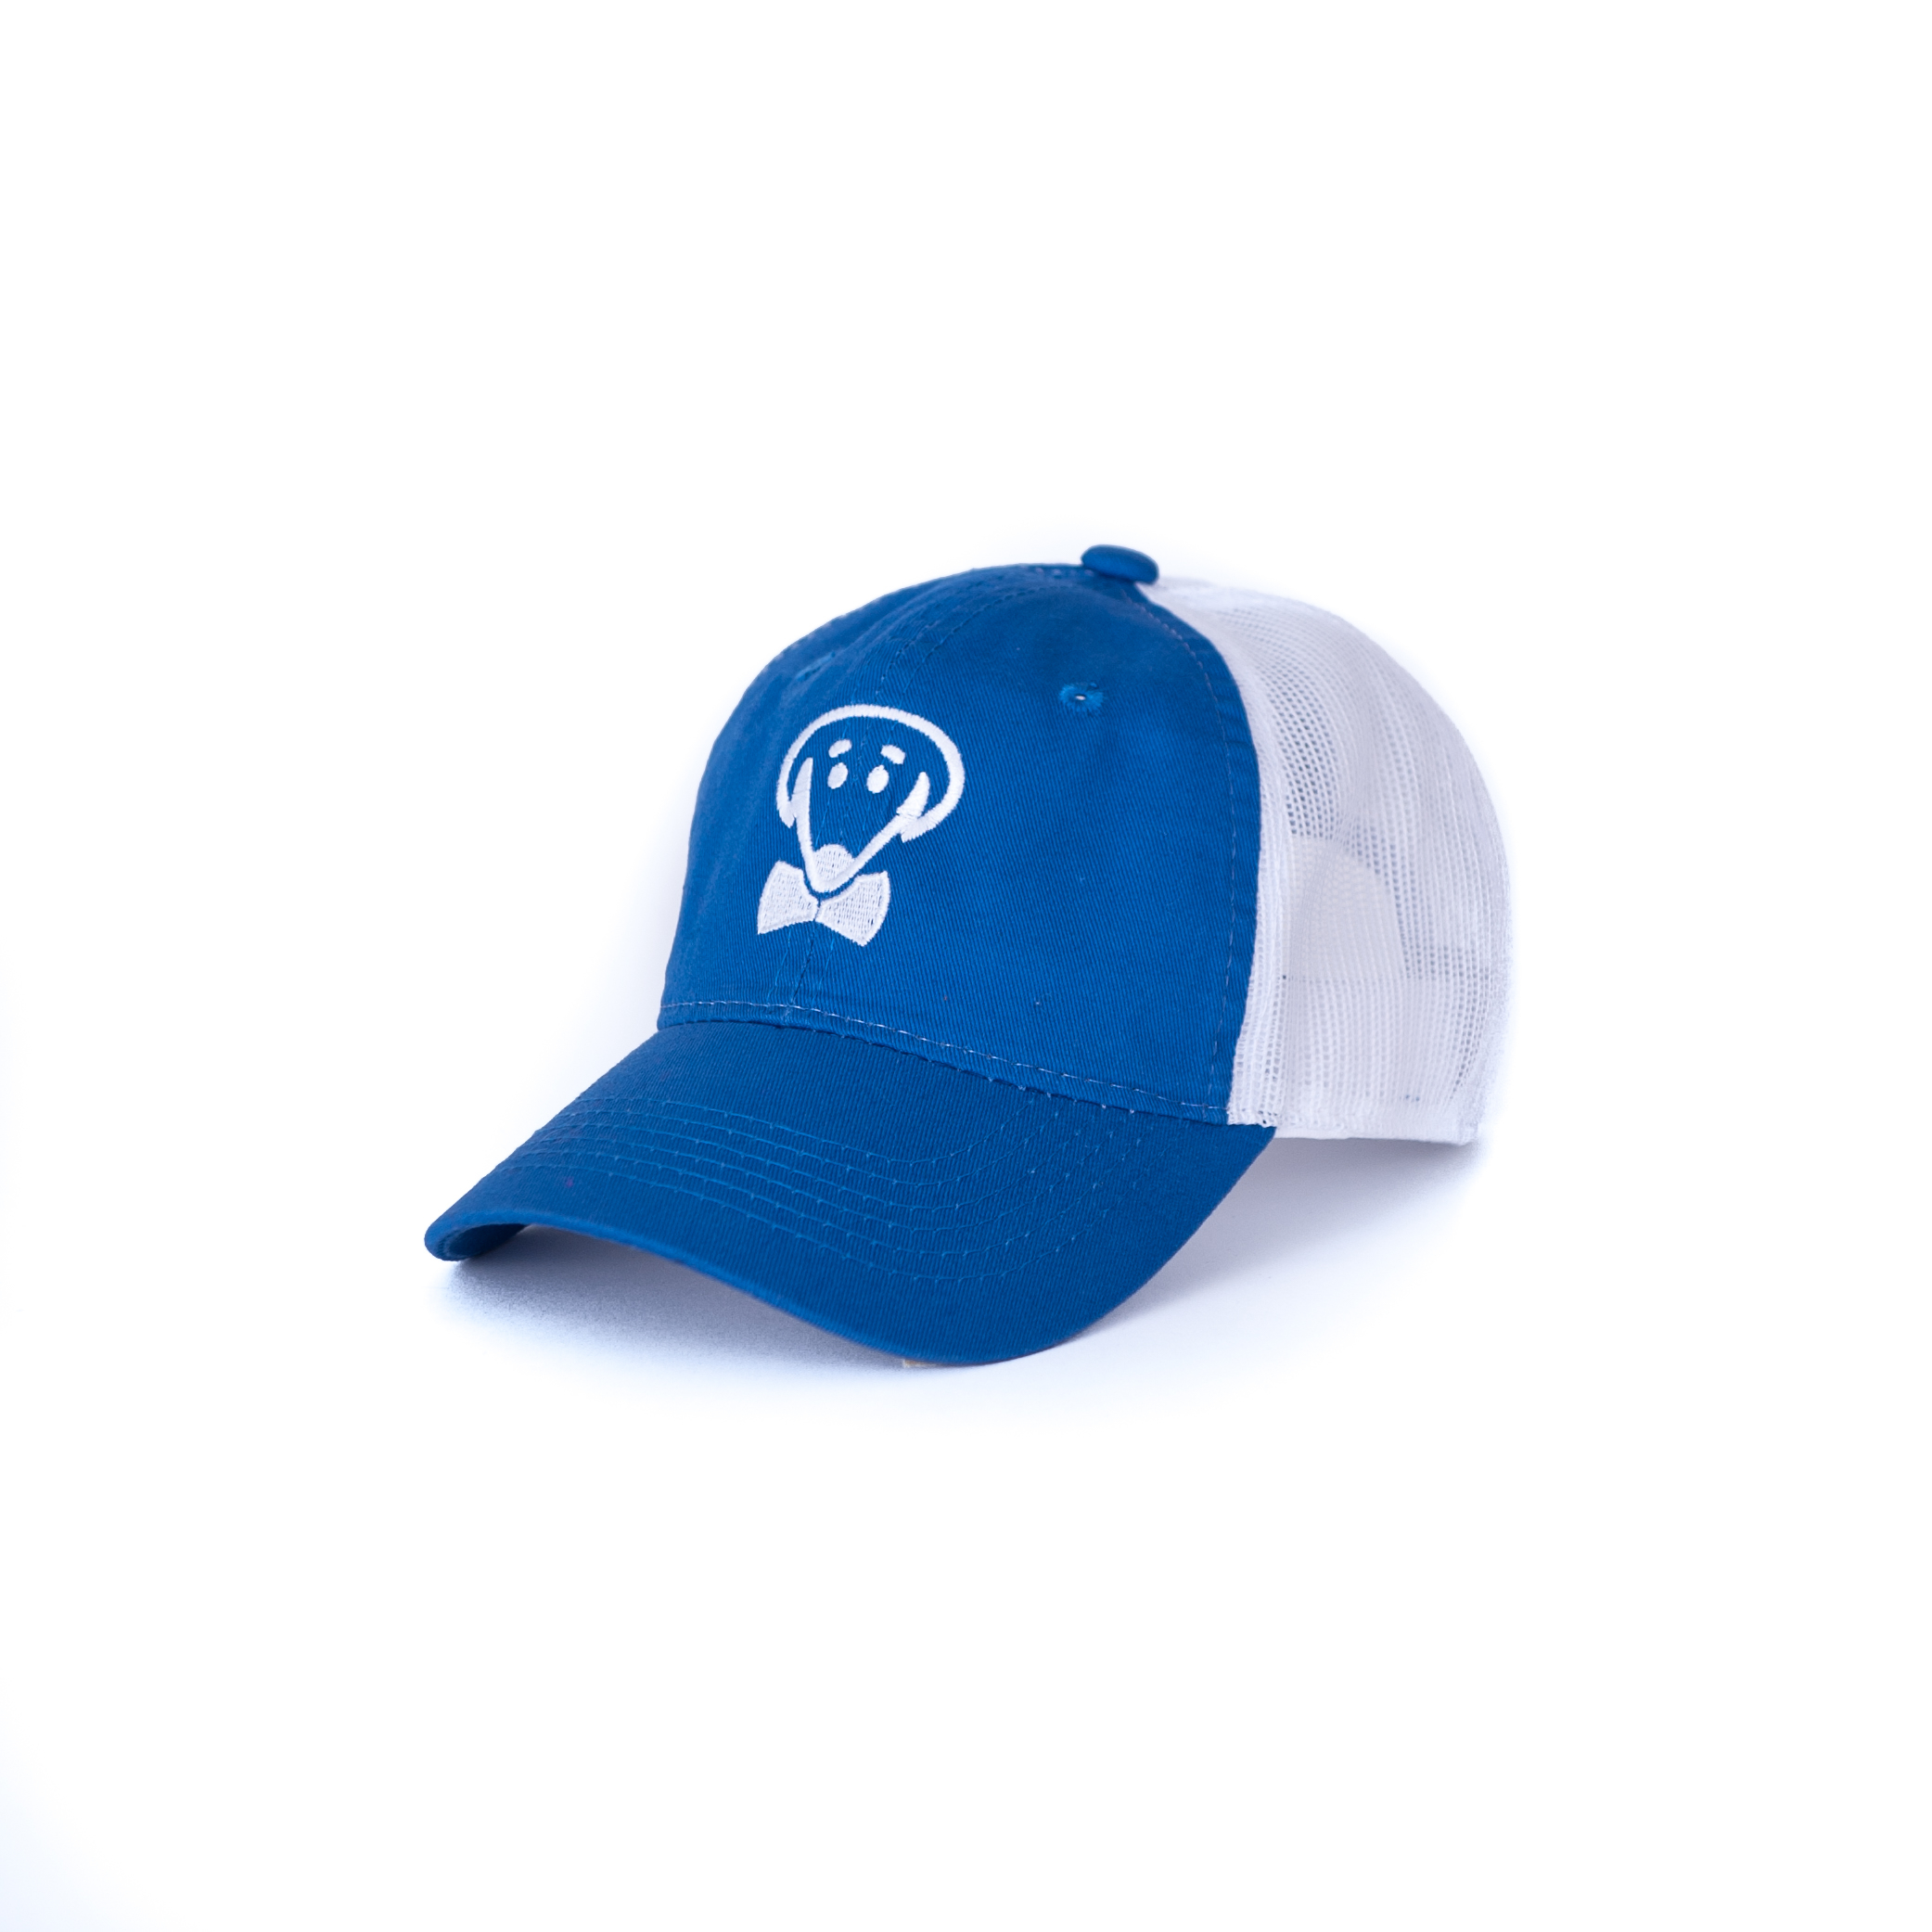 Beau Tyler – Brett Baseball Cap – Royal blue and white